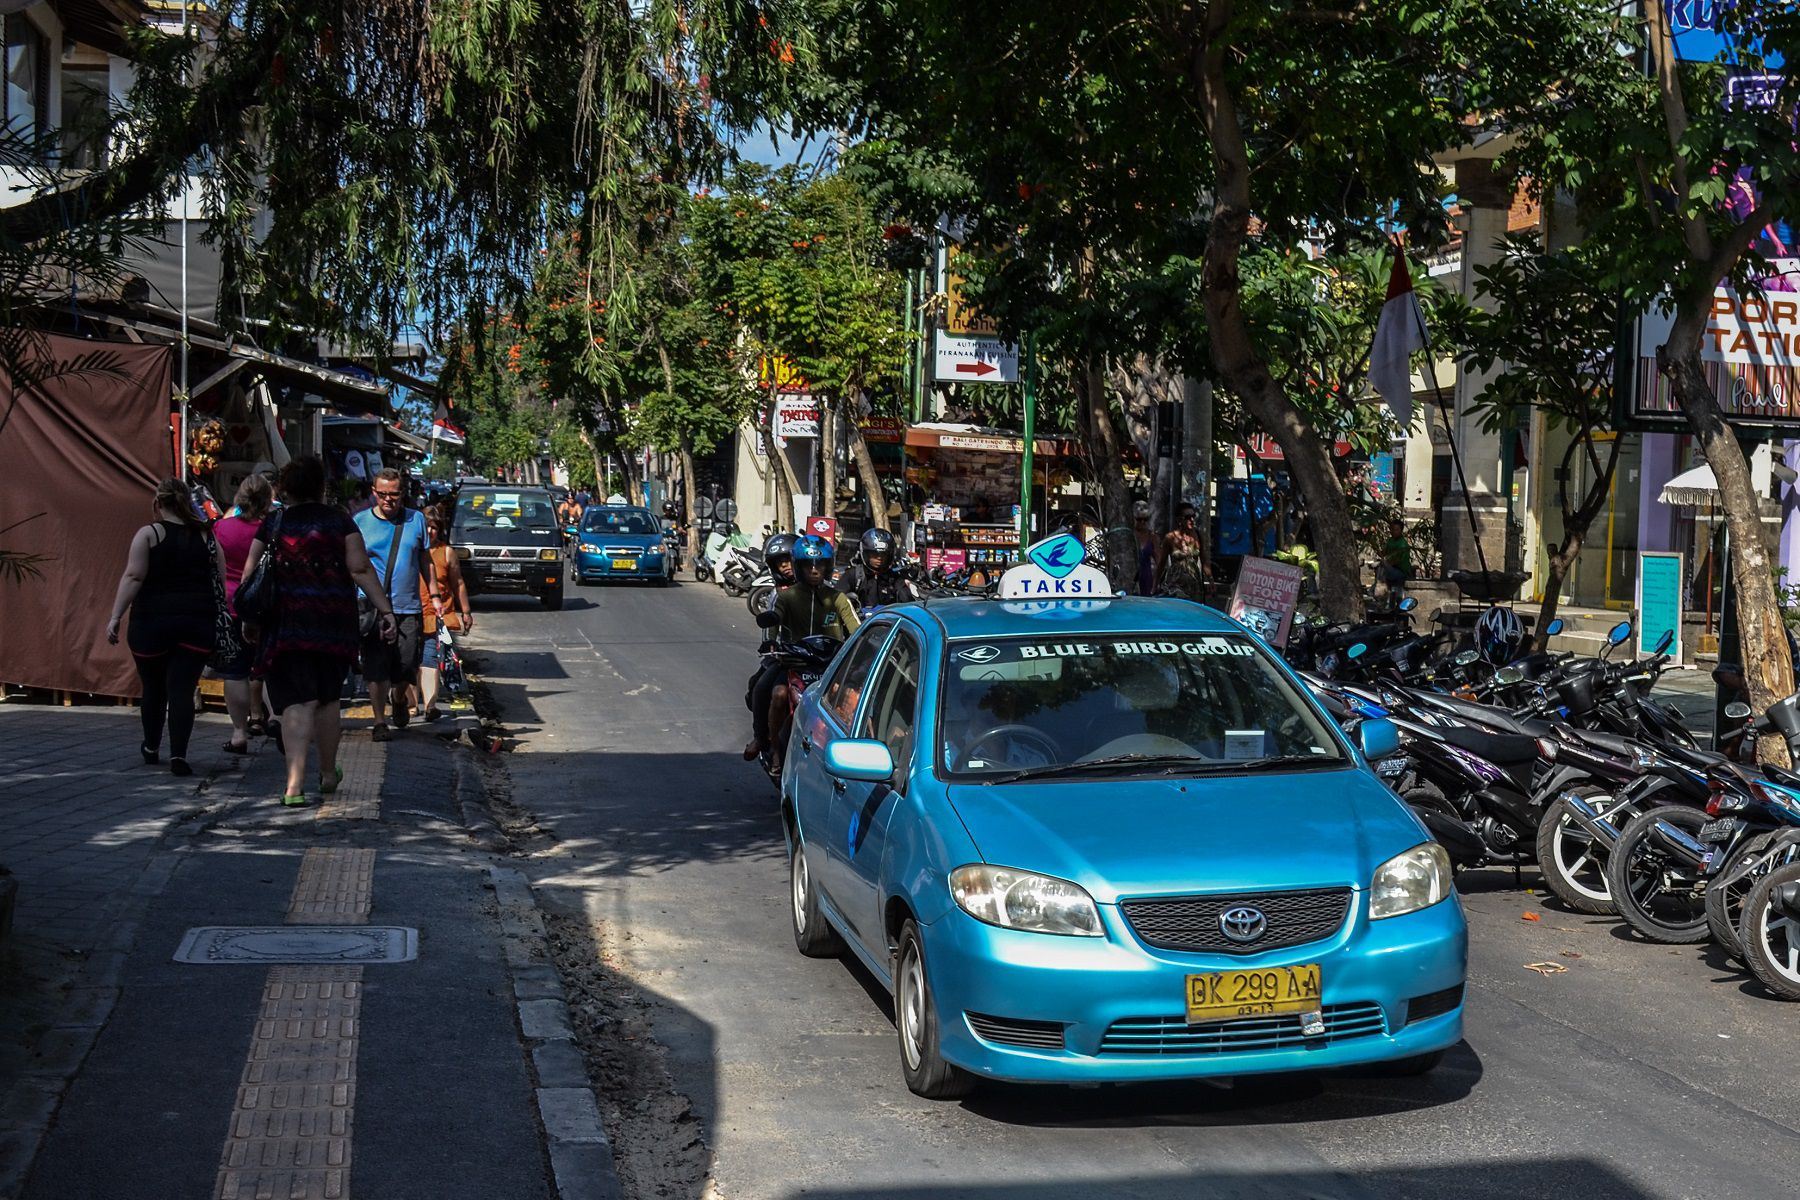 How to Ride Blue Bird Taxi & Others in Bali, Indonesia - photo#13